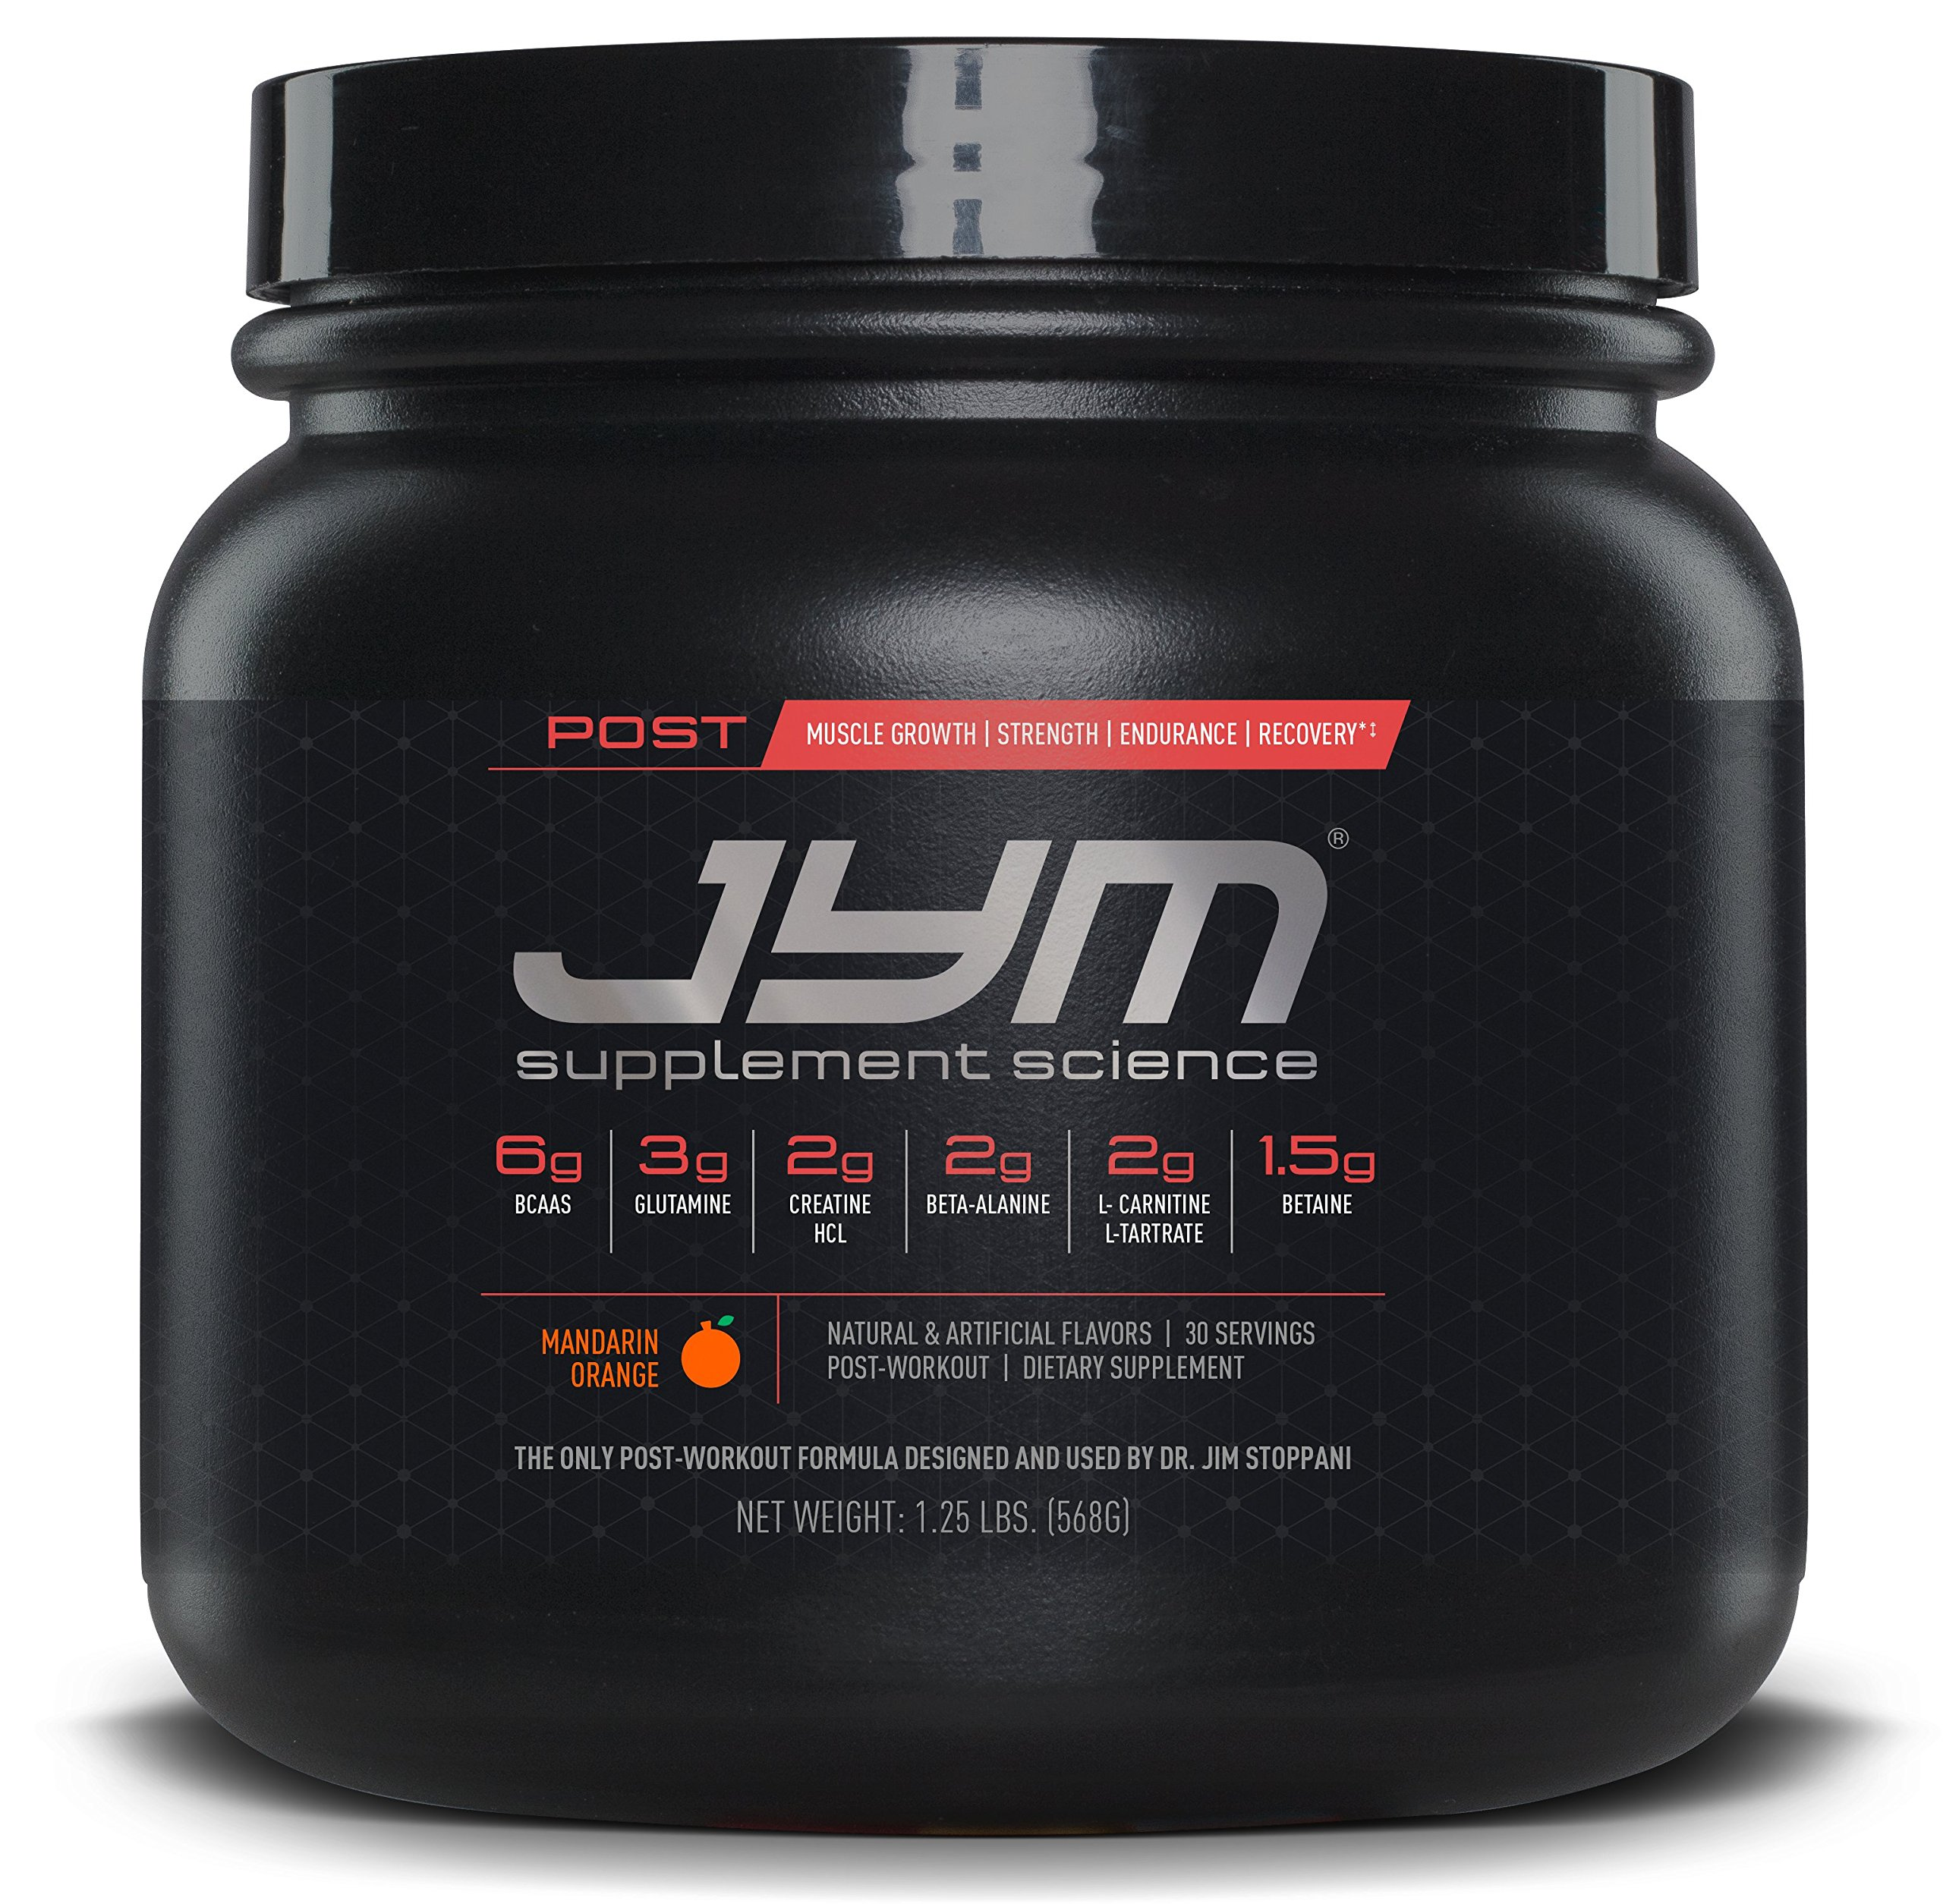 JYM Supplement Science, POST JYM Active Matrix, Mandrin Orange, Post-Workout with BCAA's, Glutamine, Creatine HCL, Beta-Alanine, L-Carnitine L-Tartrate, Betaine, Taurine, and more, 30 Servings